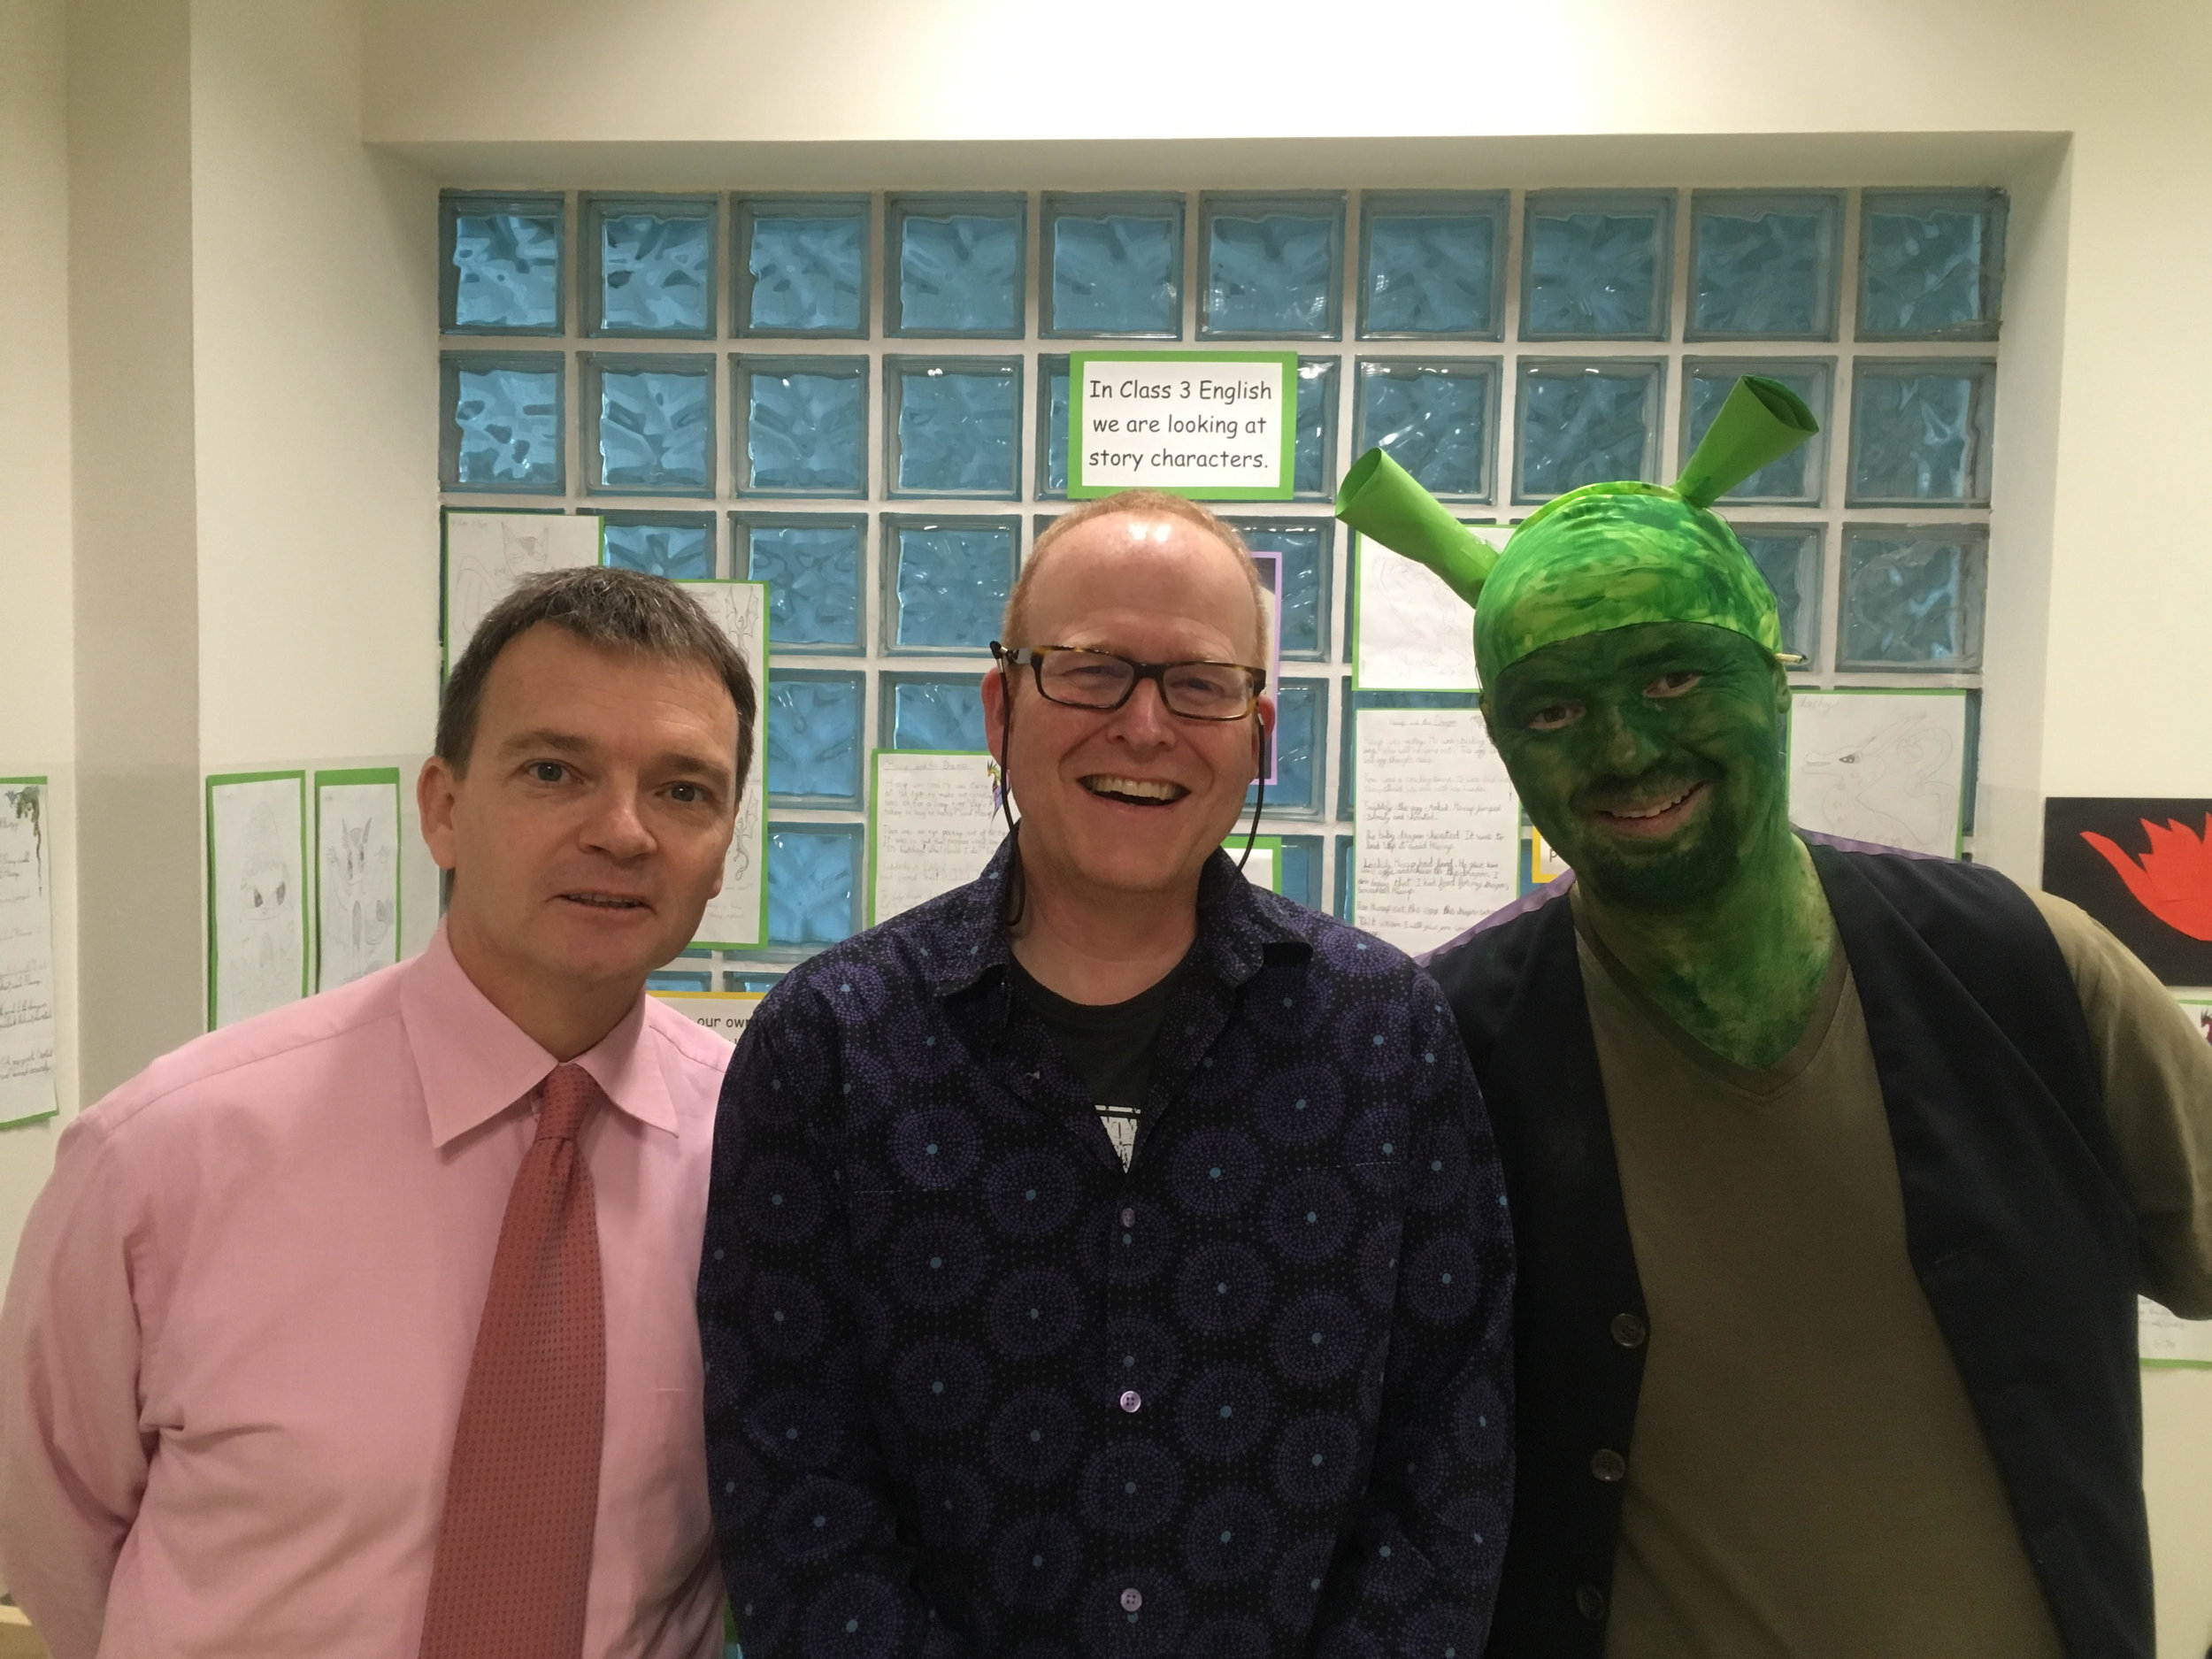 (from right) Mr. Kevin Reilly, Mr. Robert Hoare and our Principal Robert Grisdale show their freshly shaved beards.